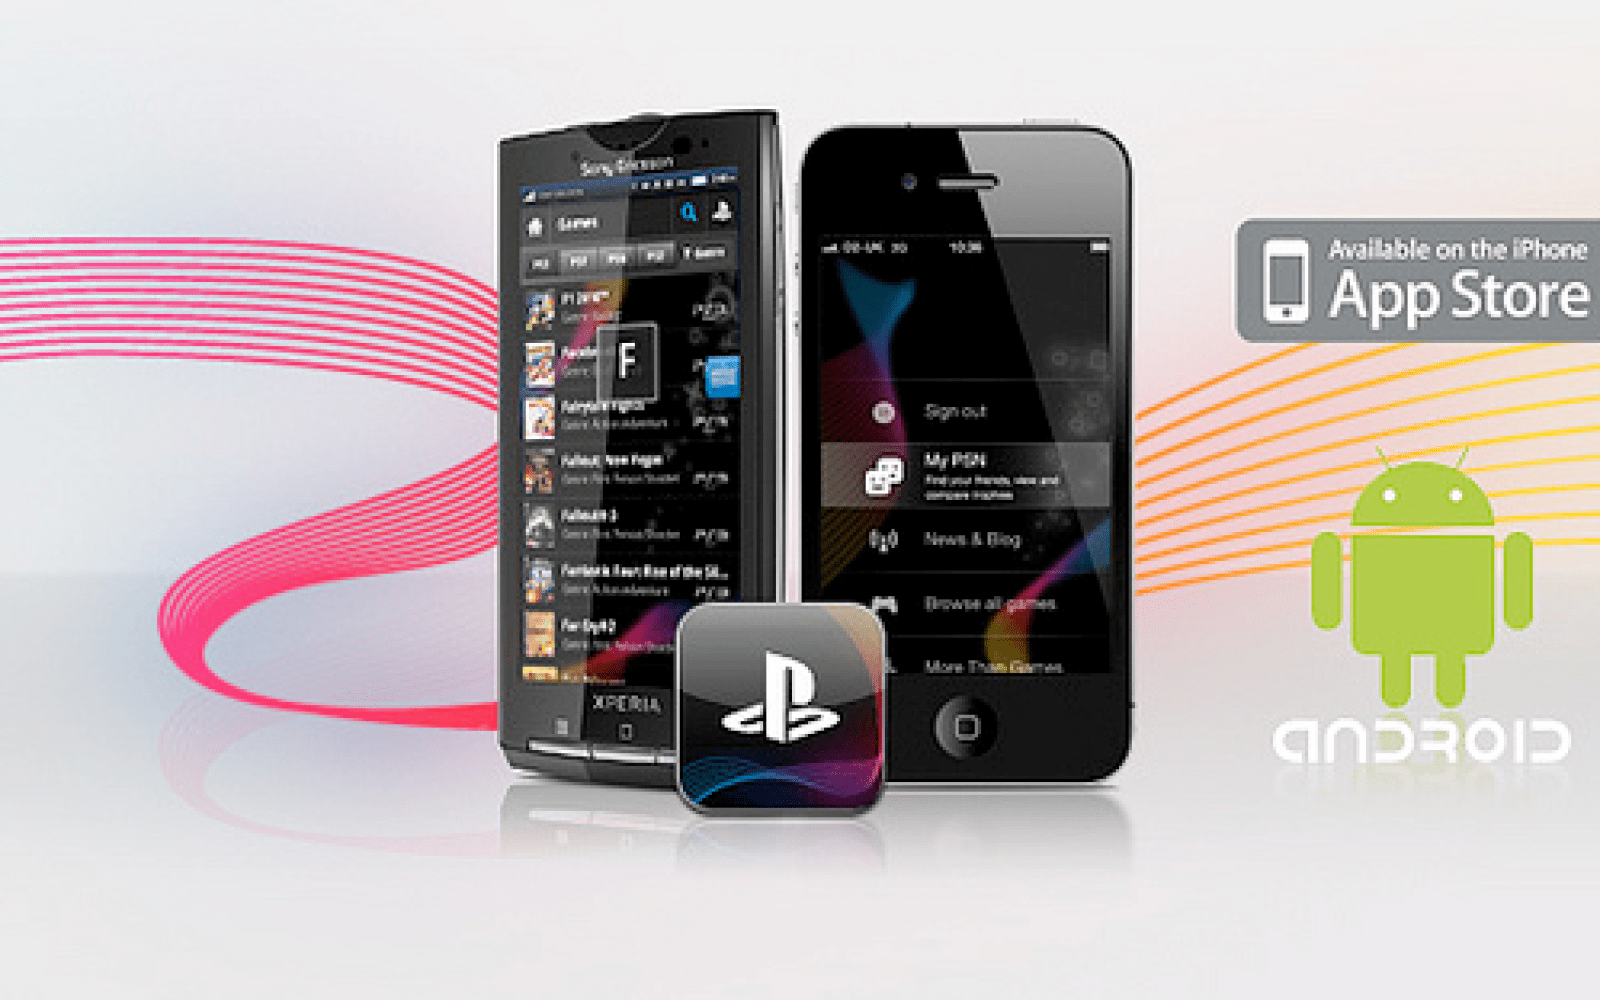 Playstation Contact Sony Announces Playstation App For Iphone And Ipod Touch